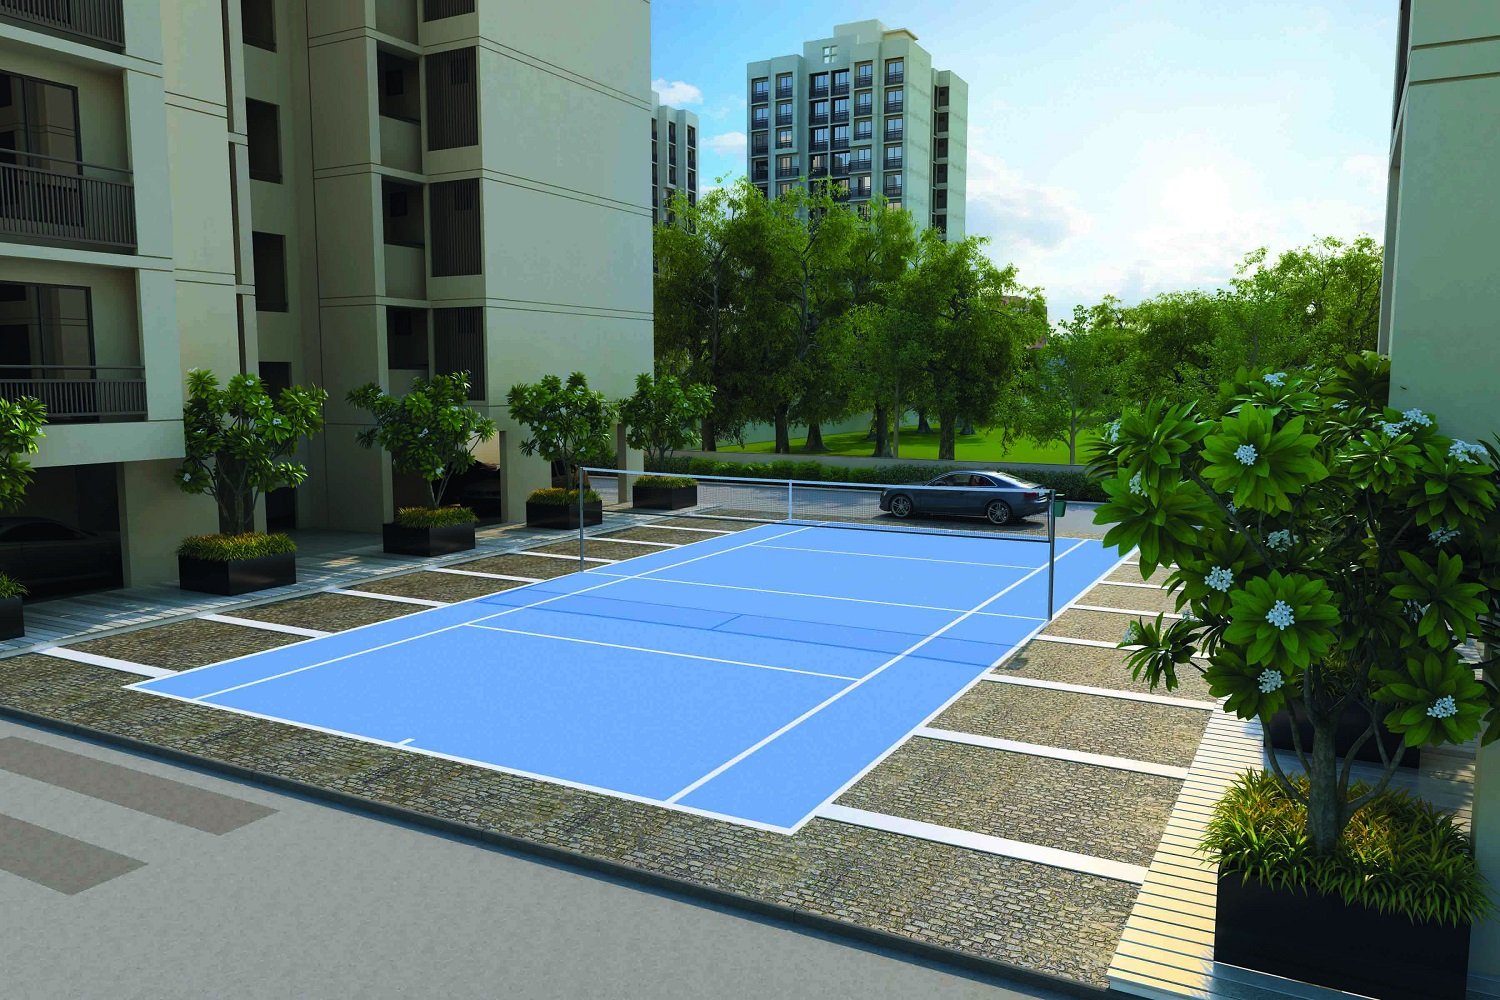 amenities-features-Picture-hn-safal-orchid-elegance-2693444